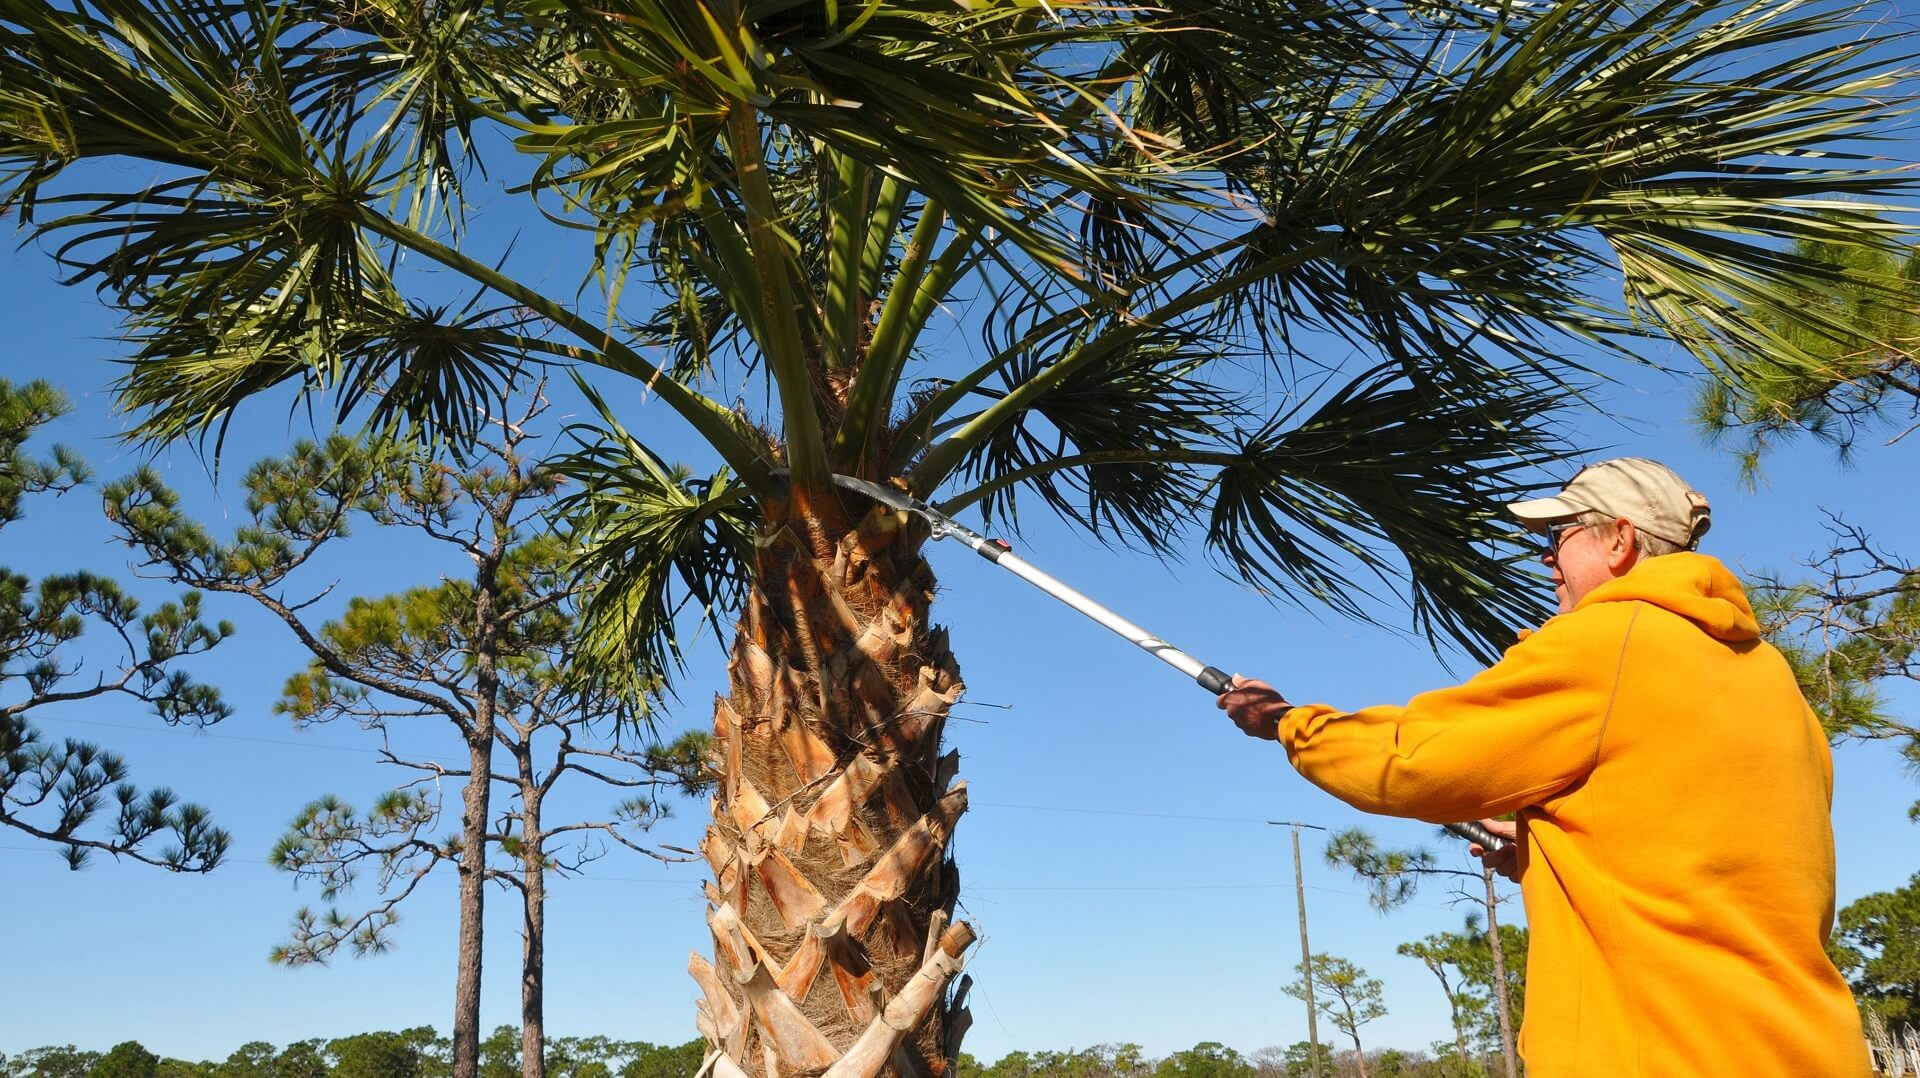 Hope Mills-Fayetteville Tree Trimming and Stump Grinding Services-We Offer Tree Trimming Services, Tree Removal, Tree Pruning, Tree Cutting, Residential and Commercial Tree Trimming Services, Storm Damage, Emergency Tree Removal, Land Clearing, Tree Companies, Tree Care Service, Stump Grinding, and we're the Best Tree Trimming Company Near You Guaranteed!